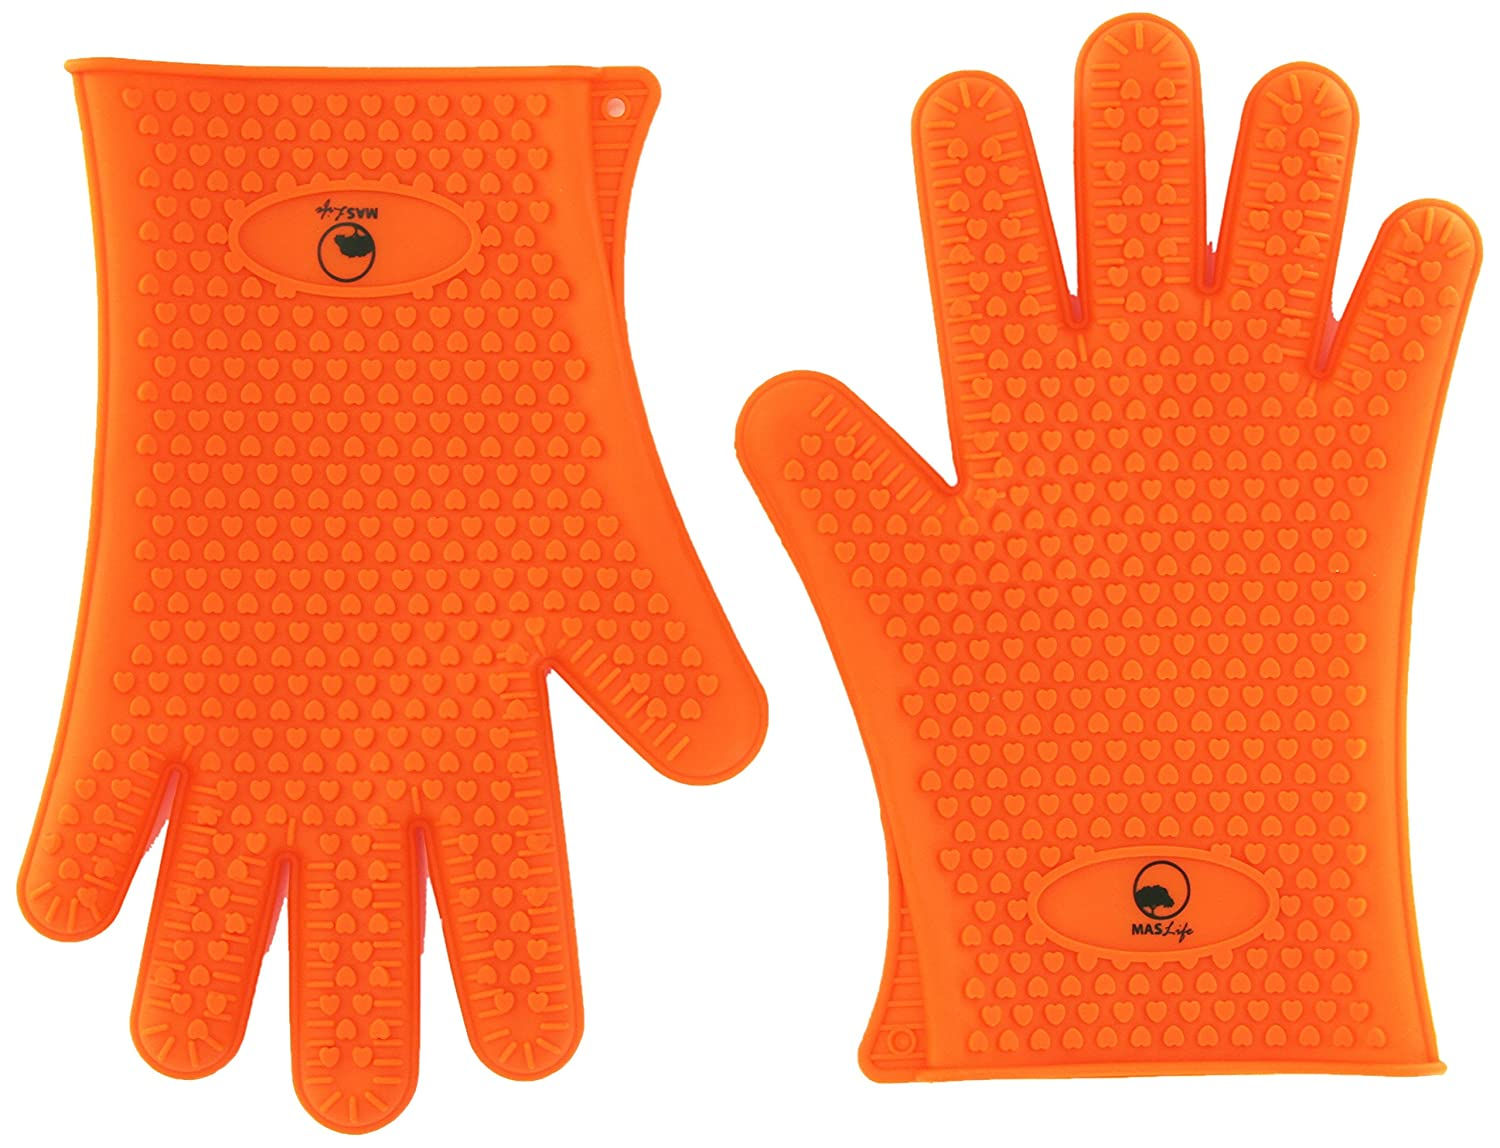 MASlife Silicone BBQ Oven Cooking Gloves- Heat Resistant - BBQ Grill- Waterproof, Camping, Indoor-Outdoor Grilling, High Temperature Work Gloves- Unisex - One Size Fit All- Orange(1 Pair)